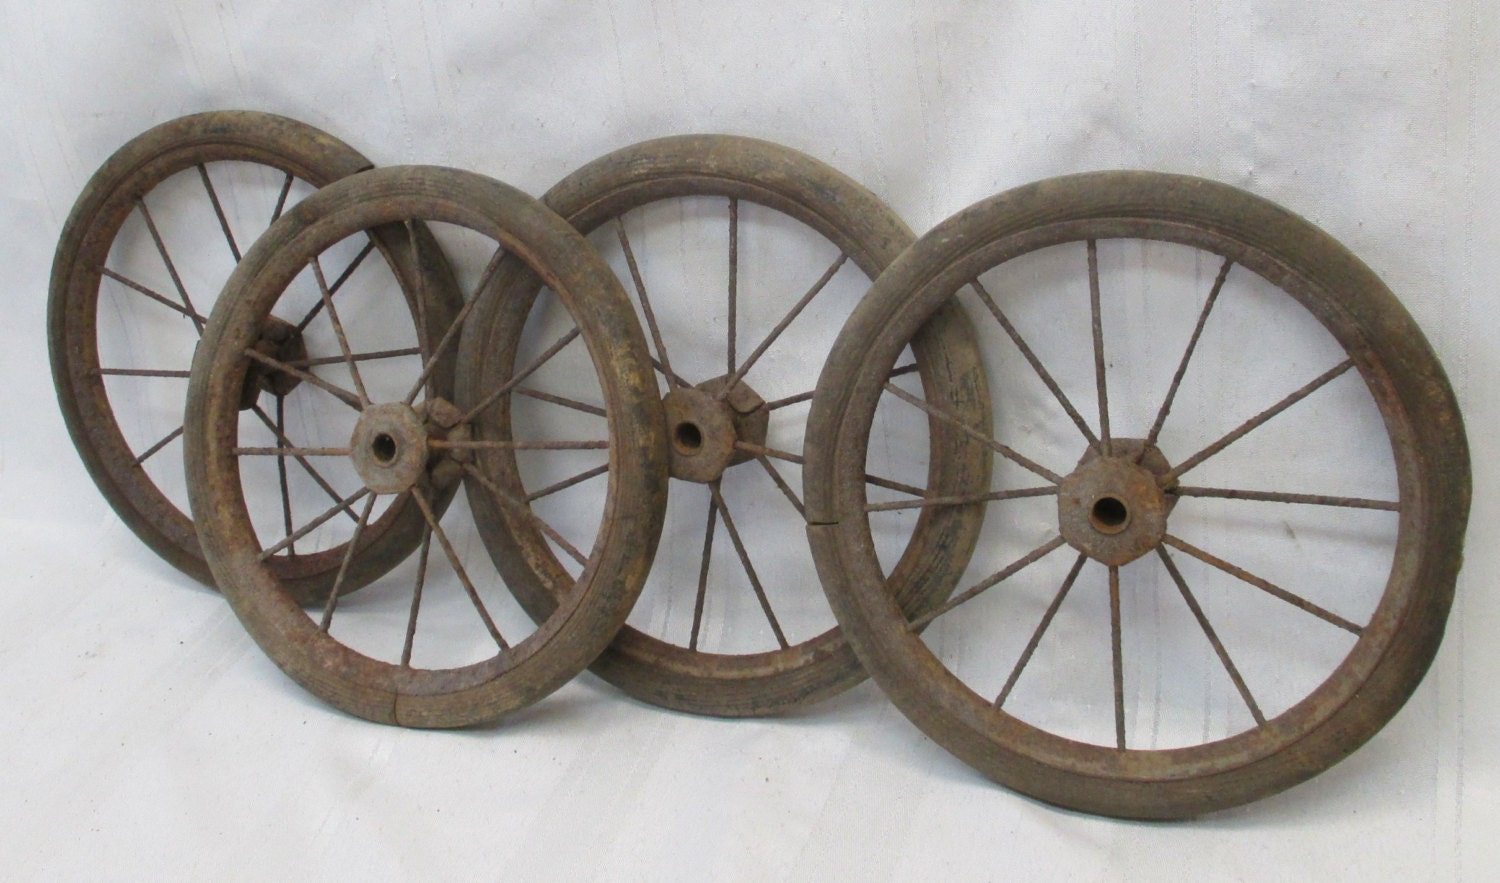 4 Vintage Baby Buggy Wire Wheels Pedal Car By Theoldgrainery